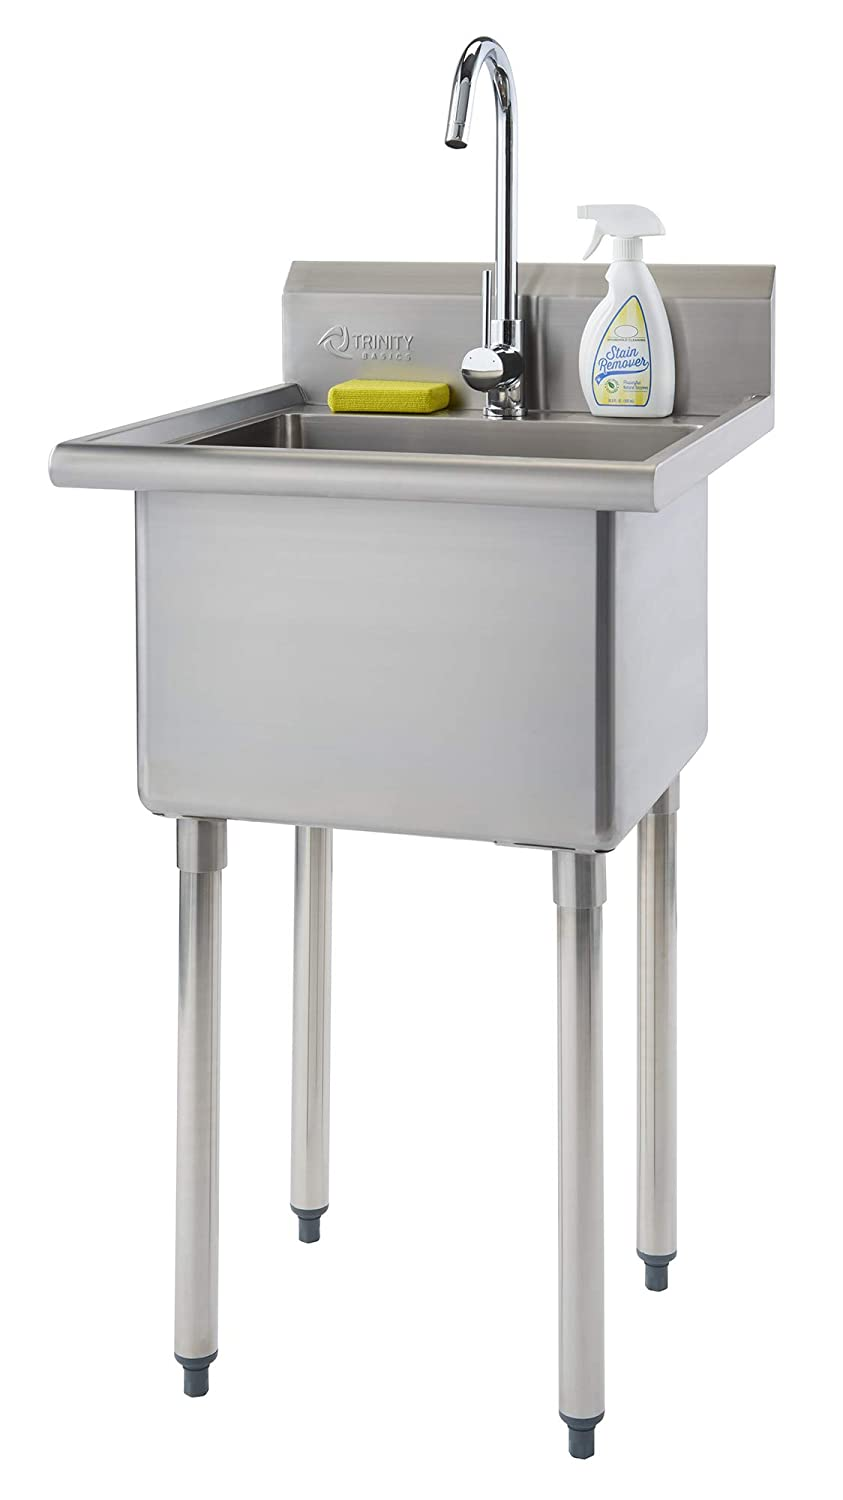 TRINITY THA-0307 Basics Stainless Steel w/Faucet Utility Sink,